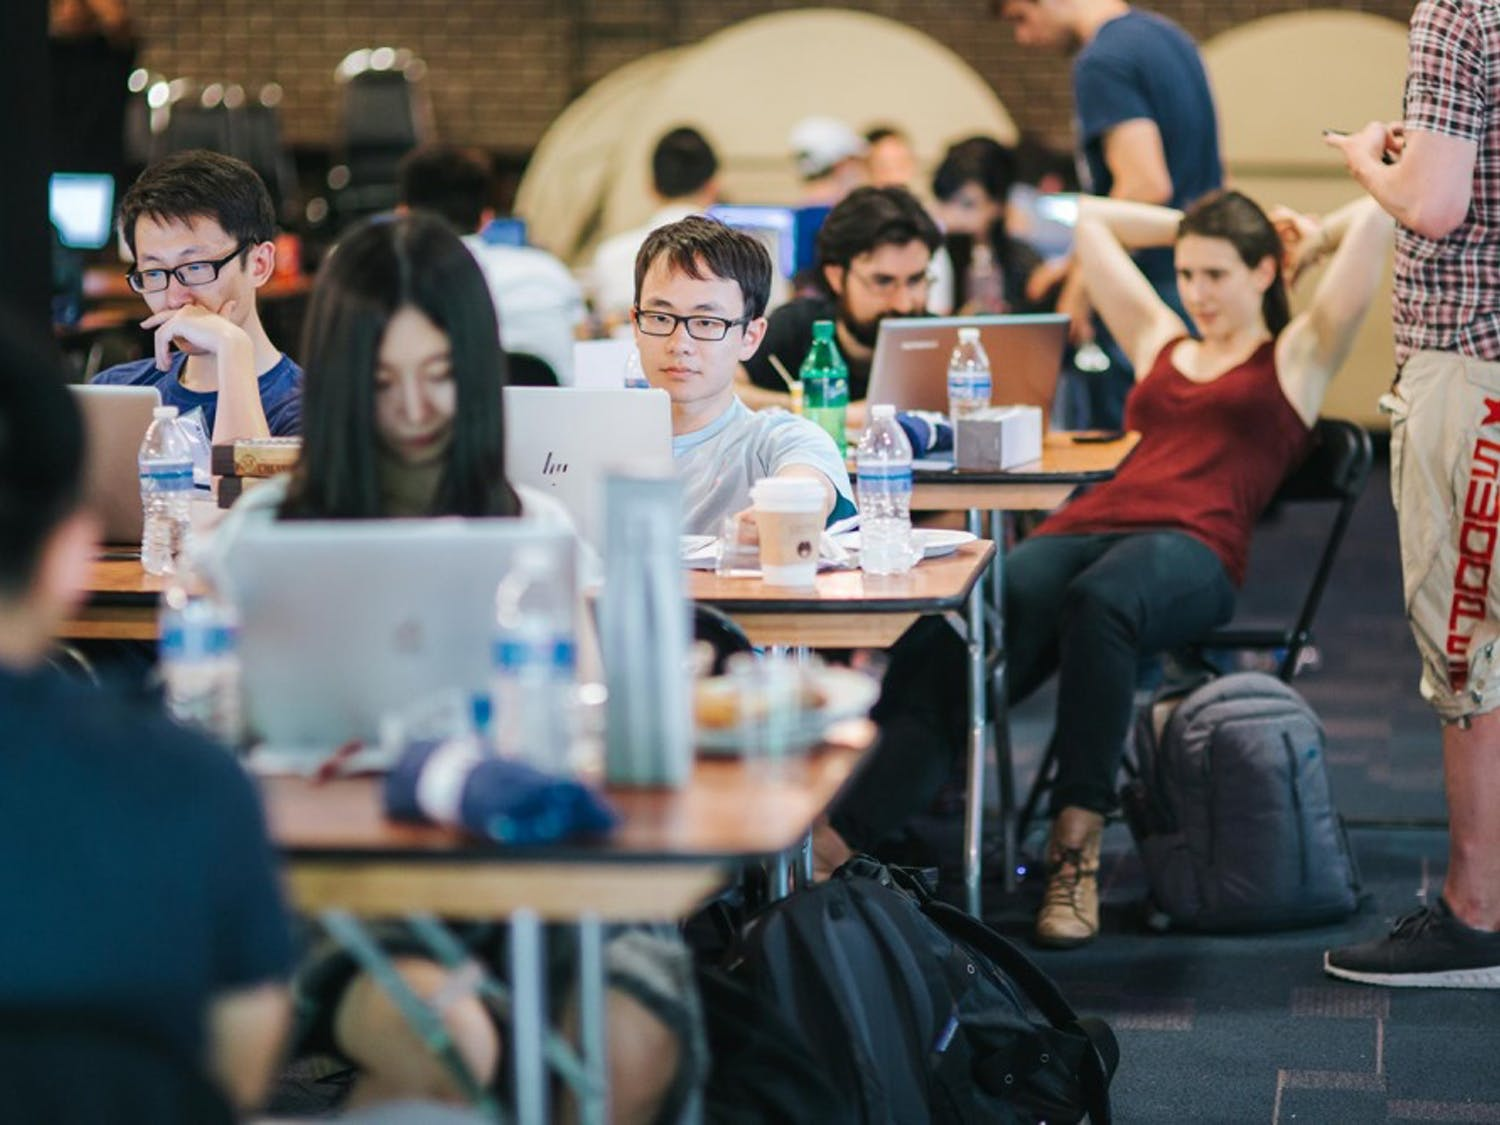 UNC and Duke students competed in a Datathon on Friday. Photo courtesy of Houa Vang.